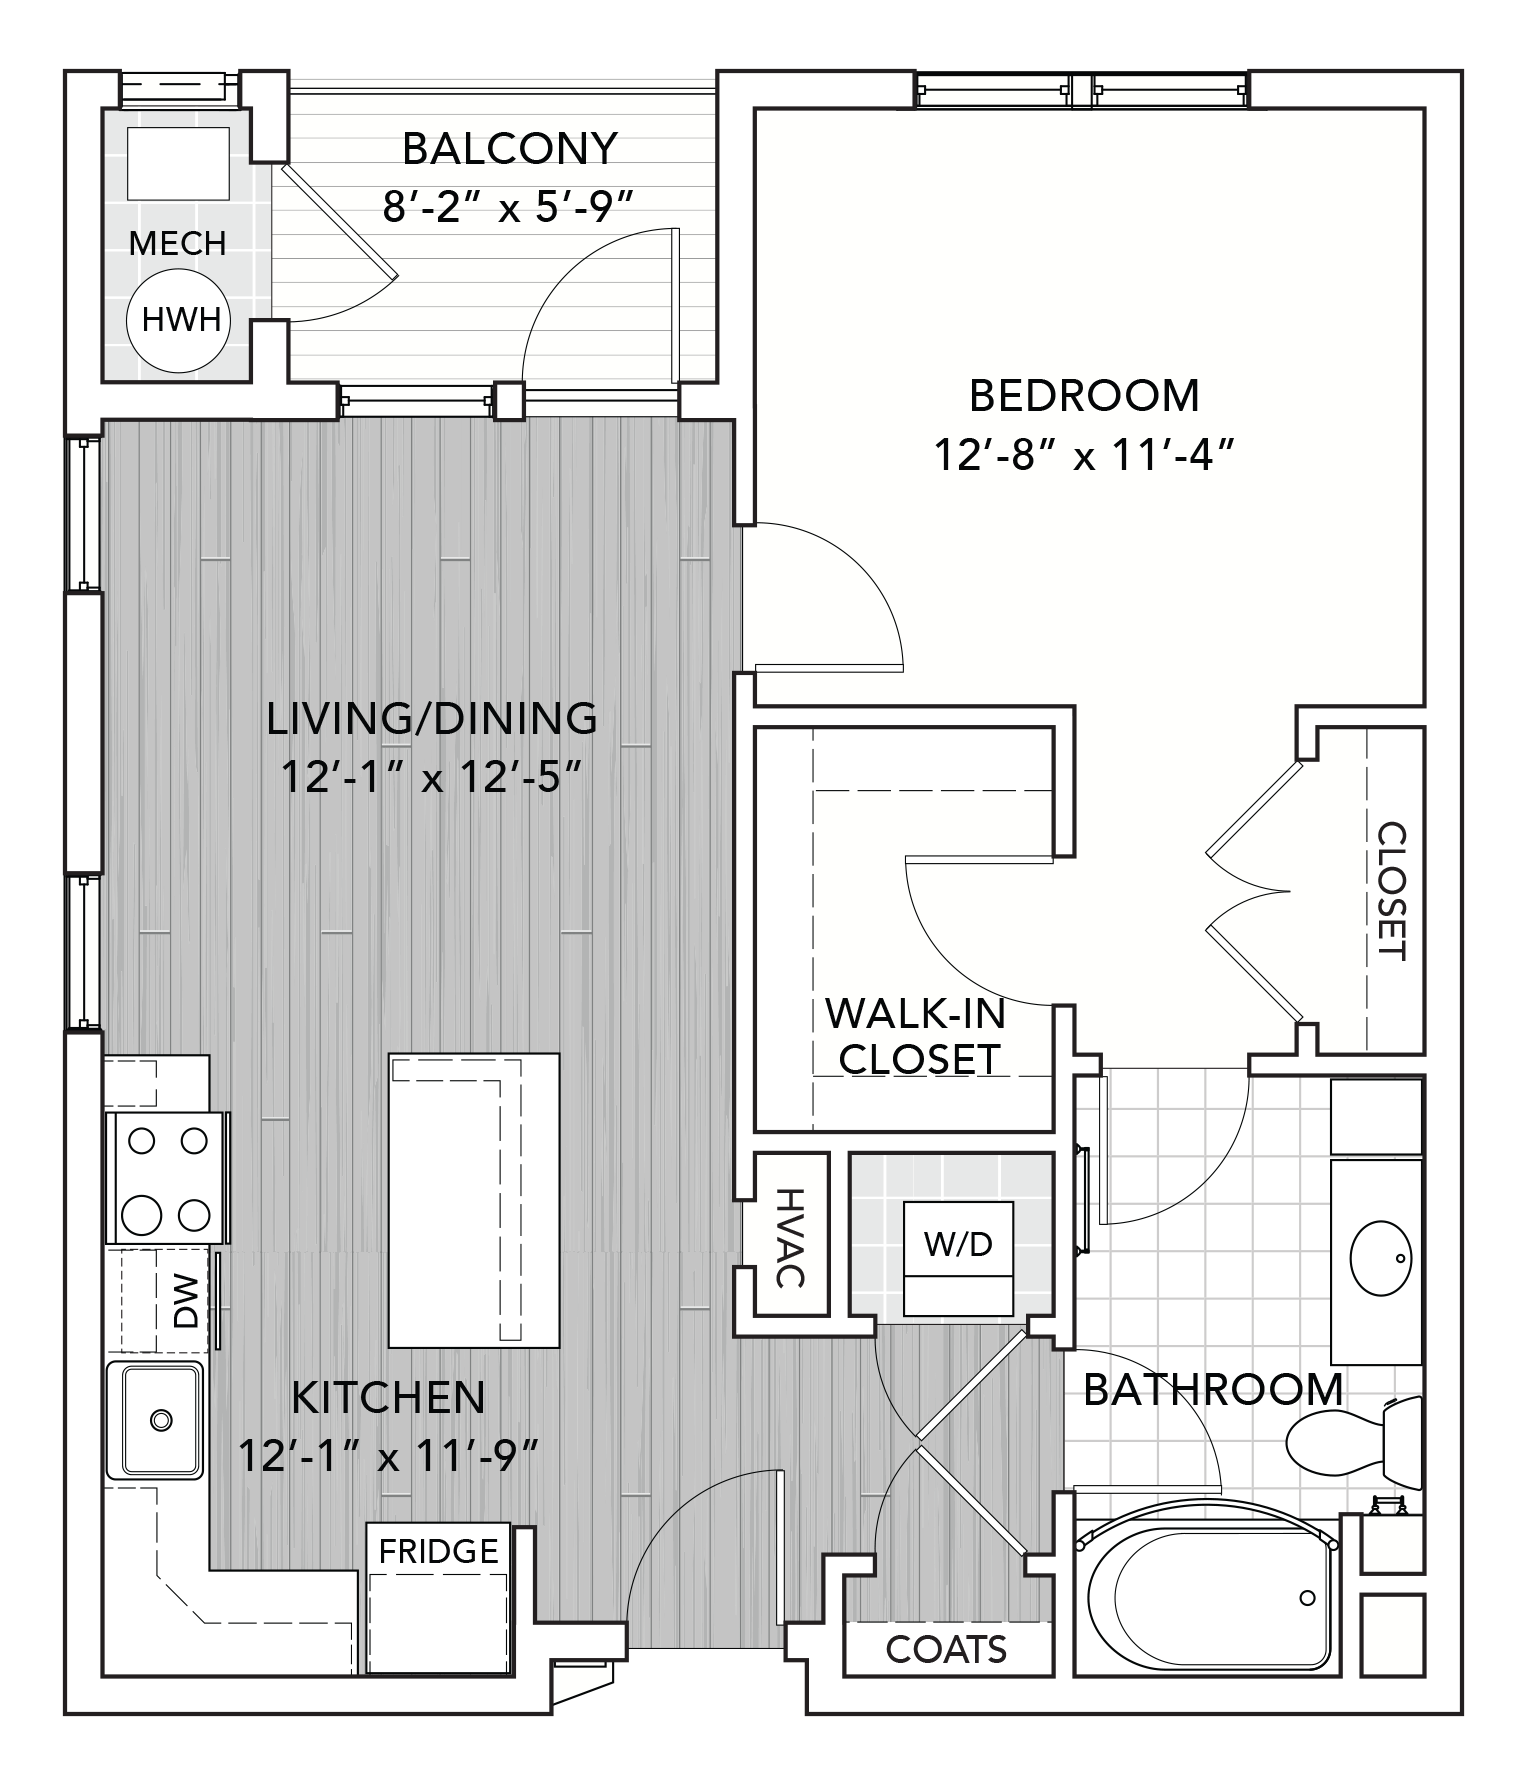 P0655013 parksquare a1 770 2 floorplan